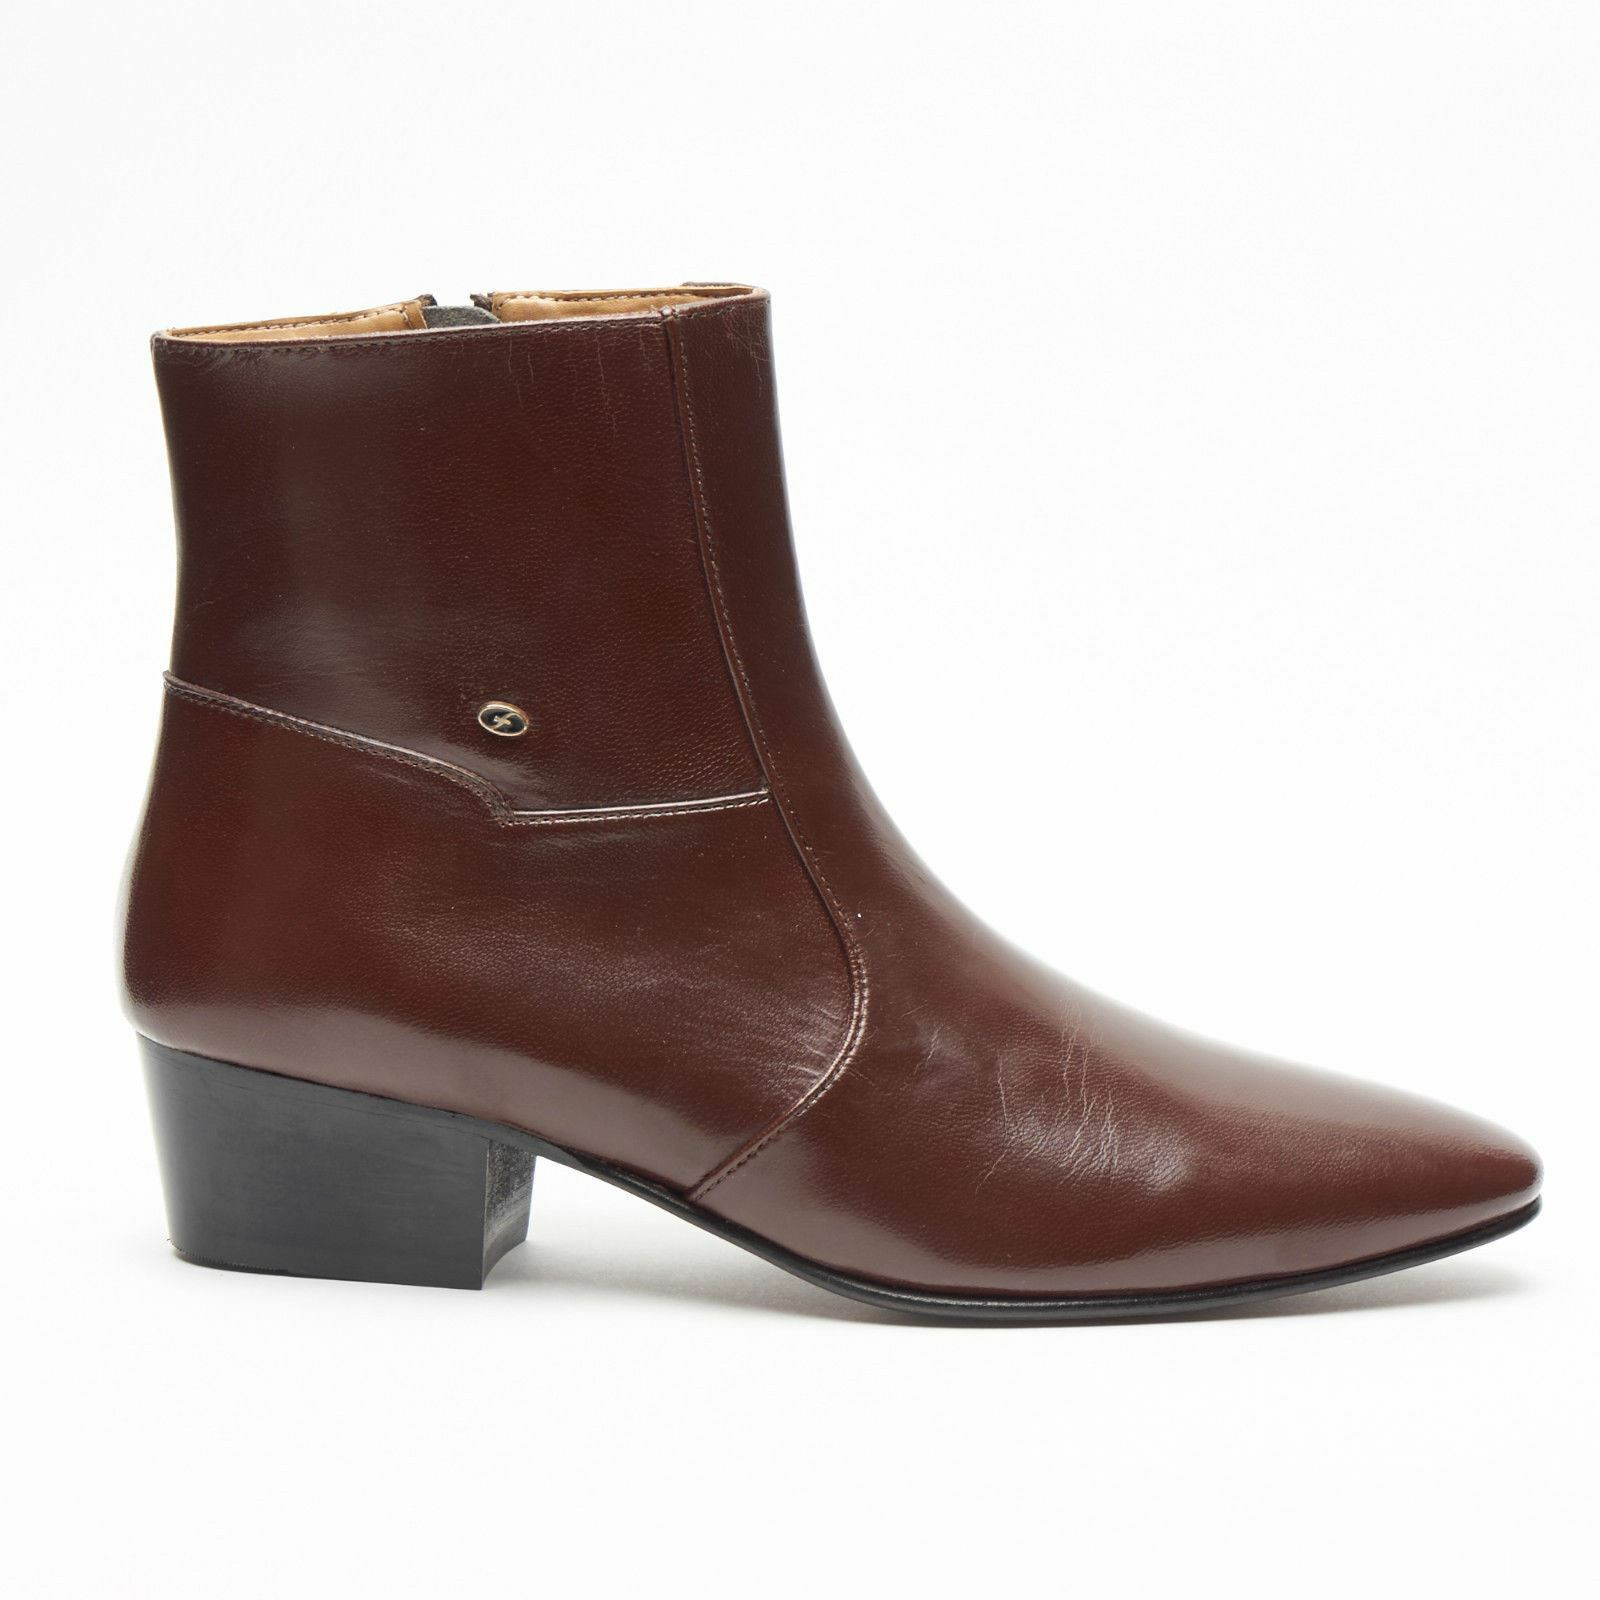 Mens Formal Lucini Boots Leather Brown Cuban Heel Wedding Ankle Boots Lucini Zip Up 7322b7